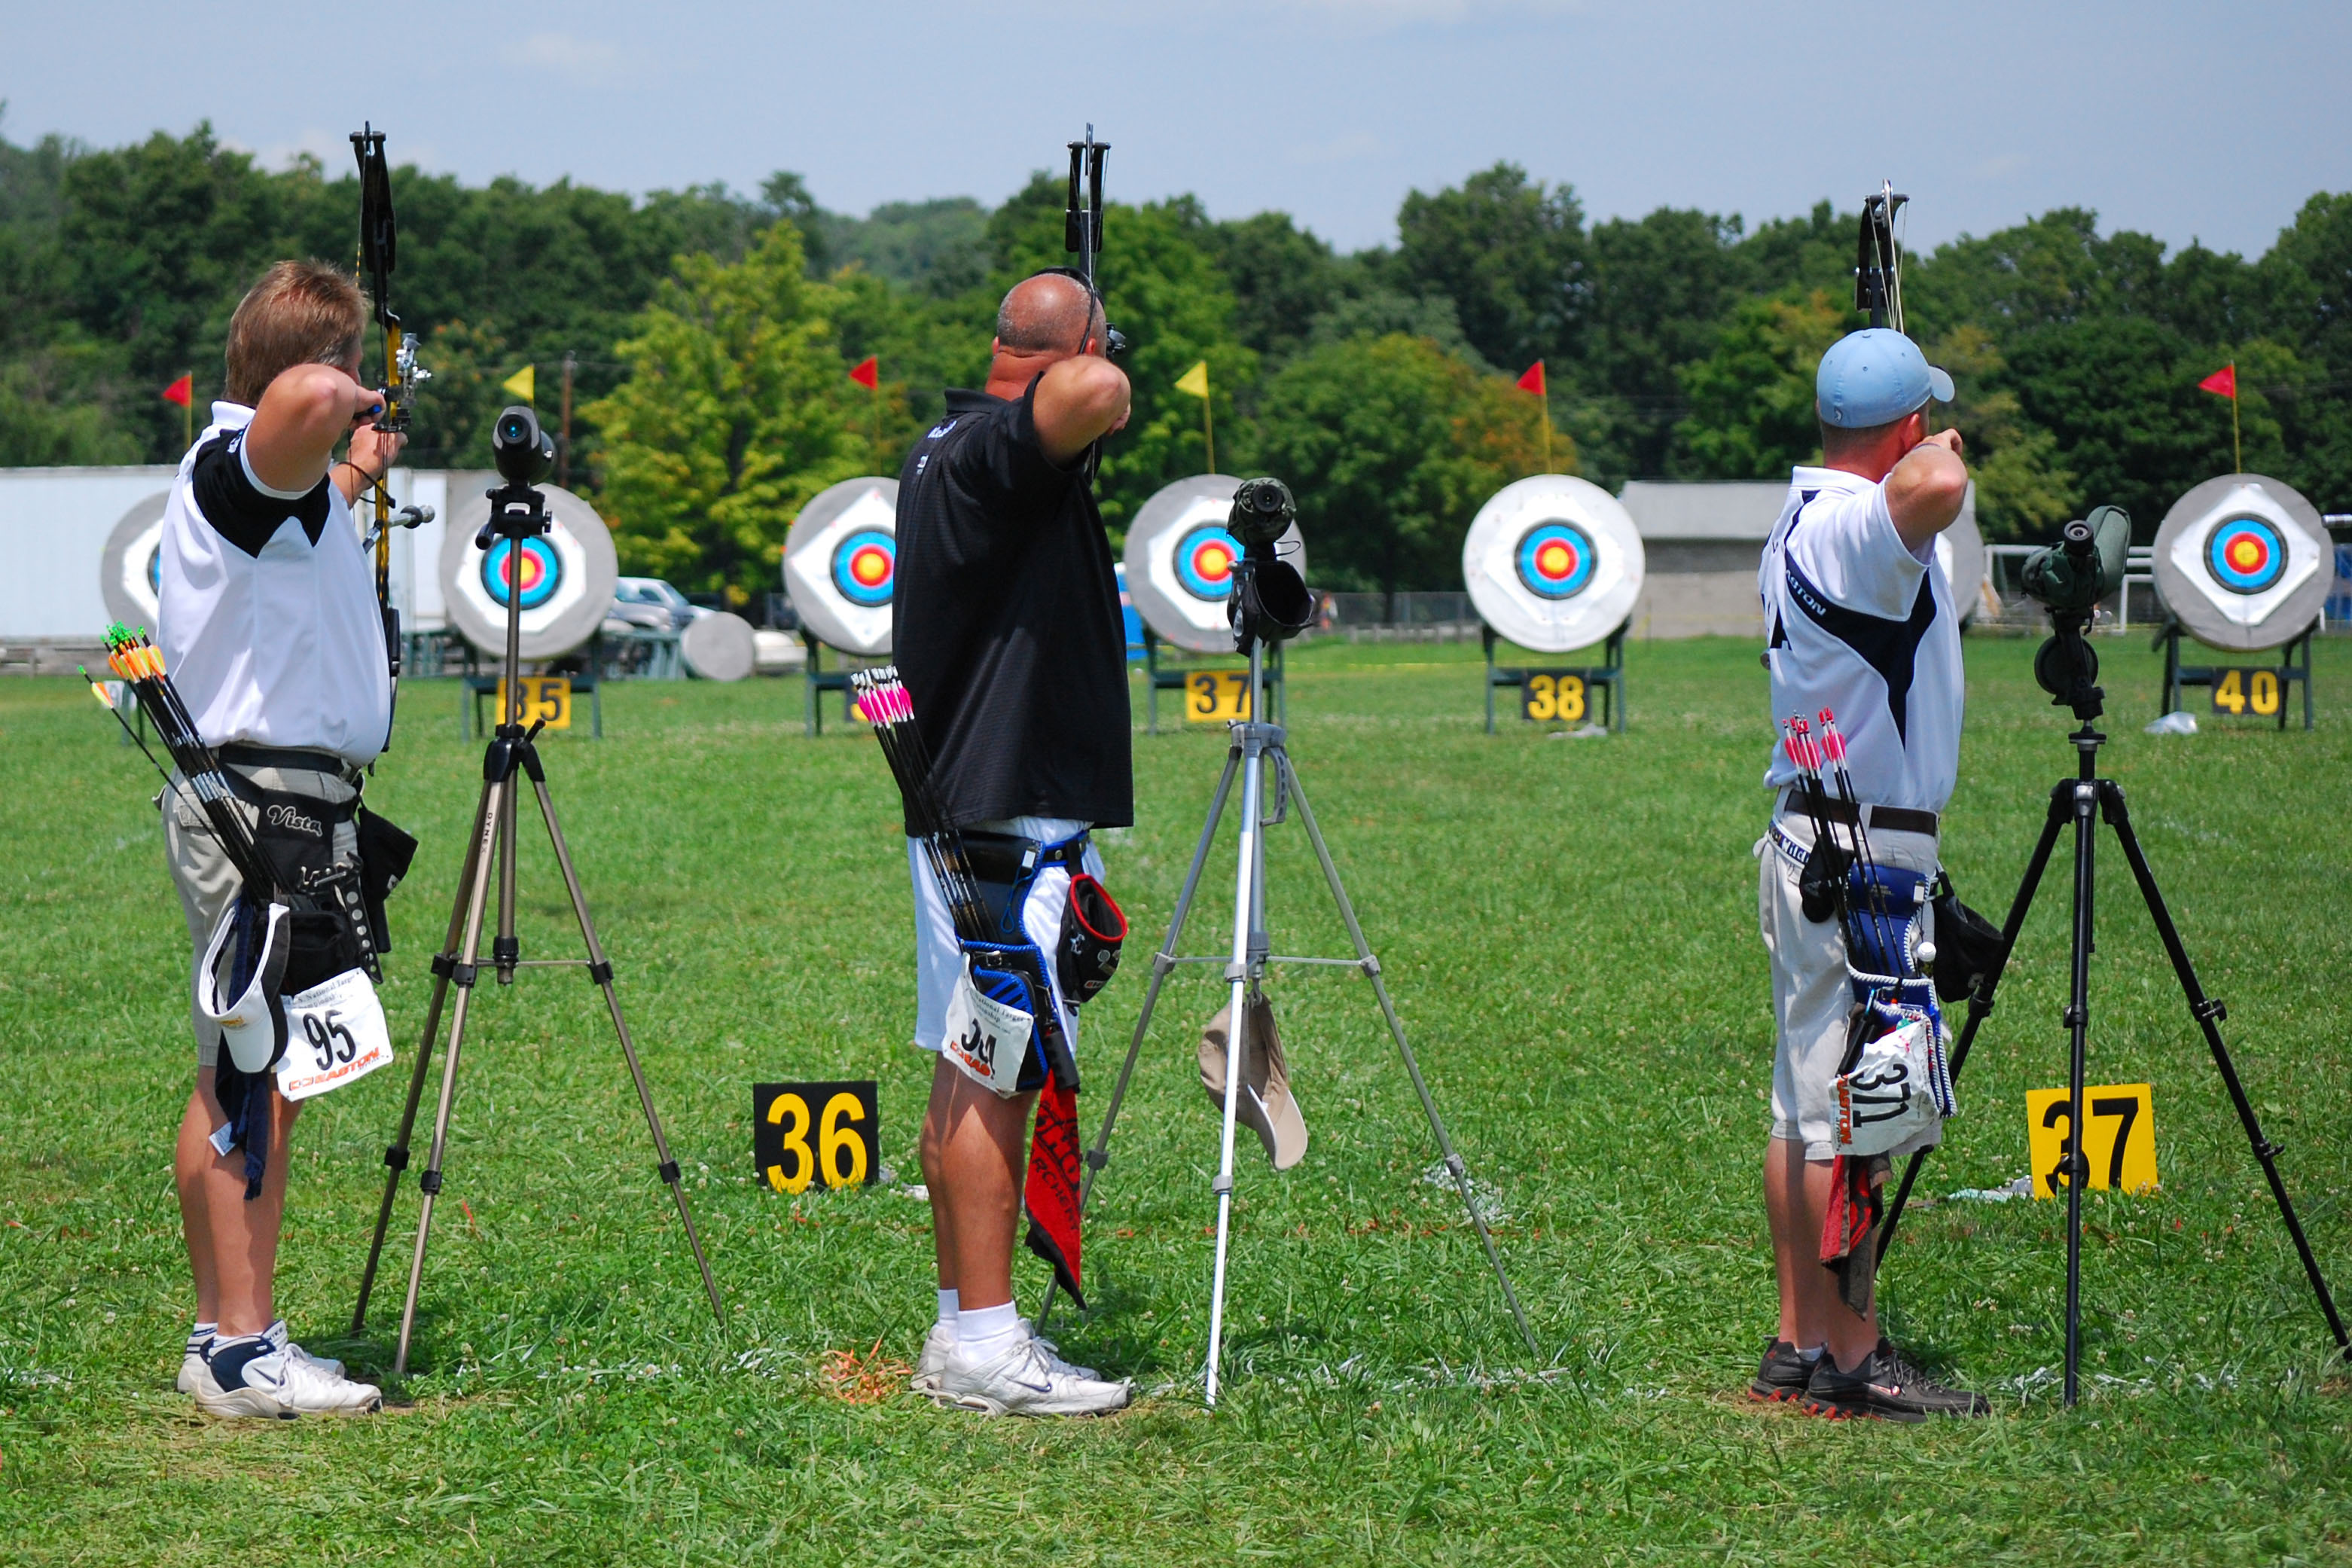 Fort Bragg NCO earns spot on U.S. Archery team | Article | The ...